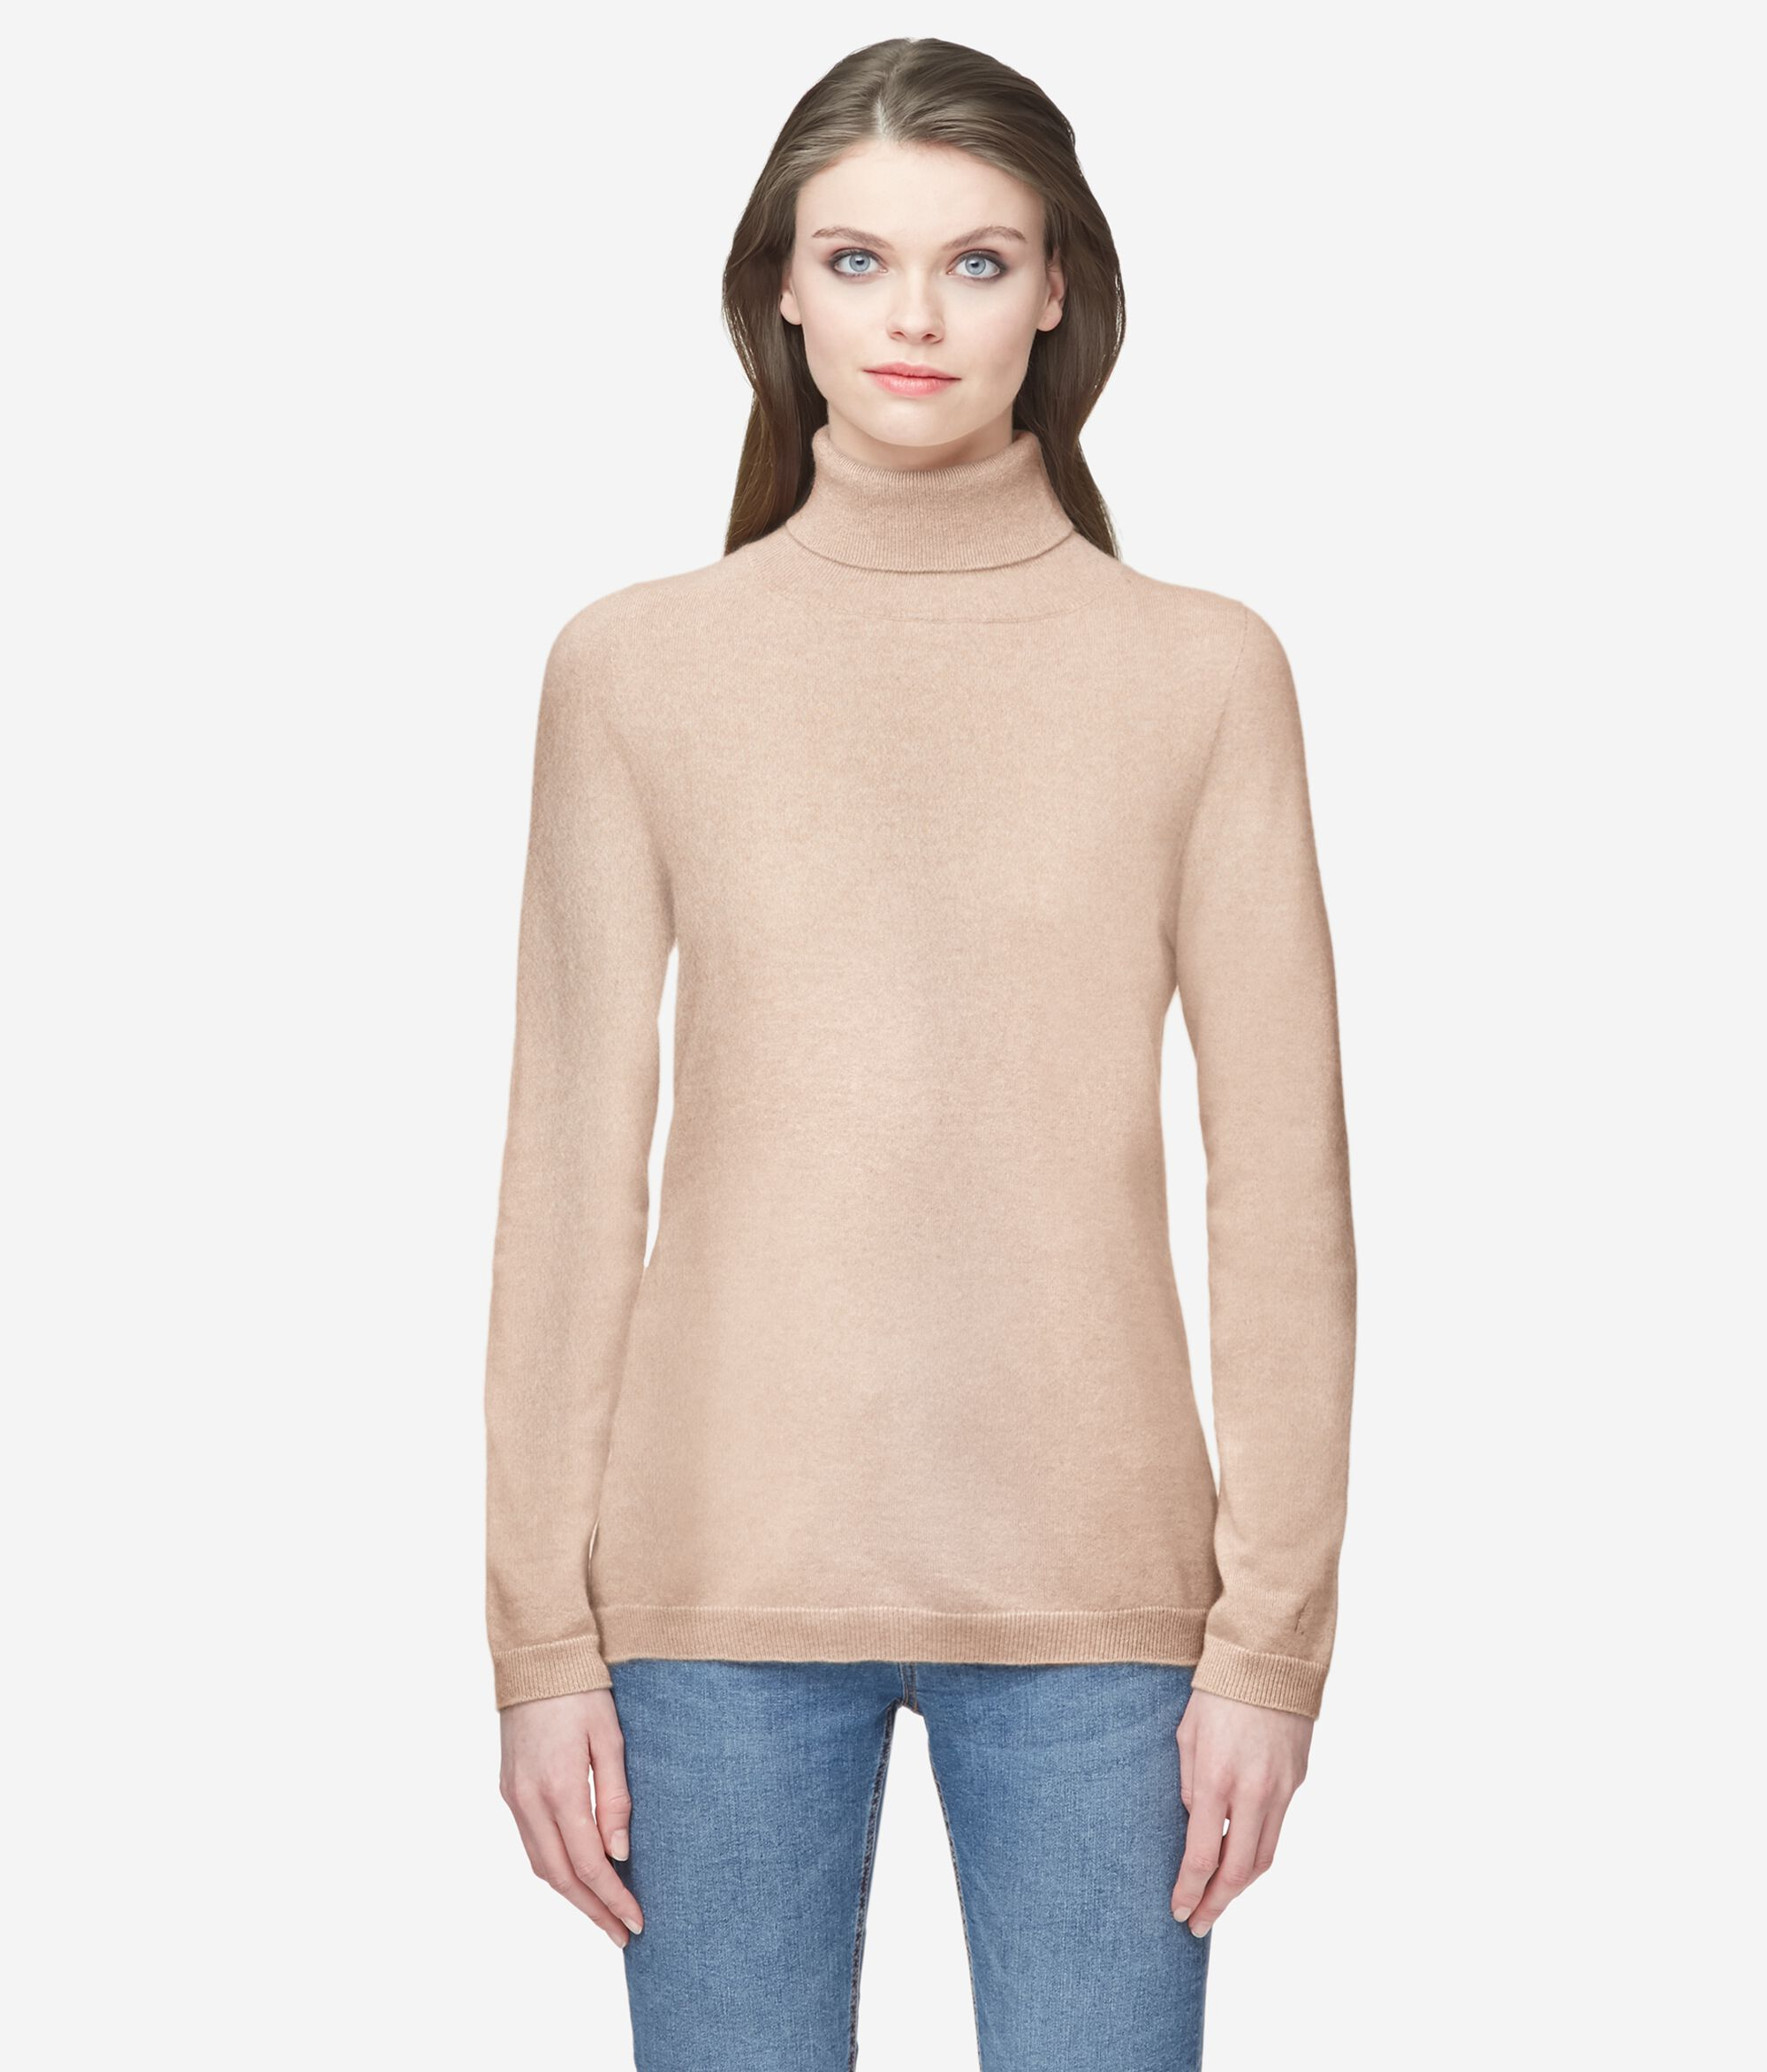 Ultrasoft Cashmere Long-Sleeve Turtleneck Jumper